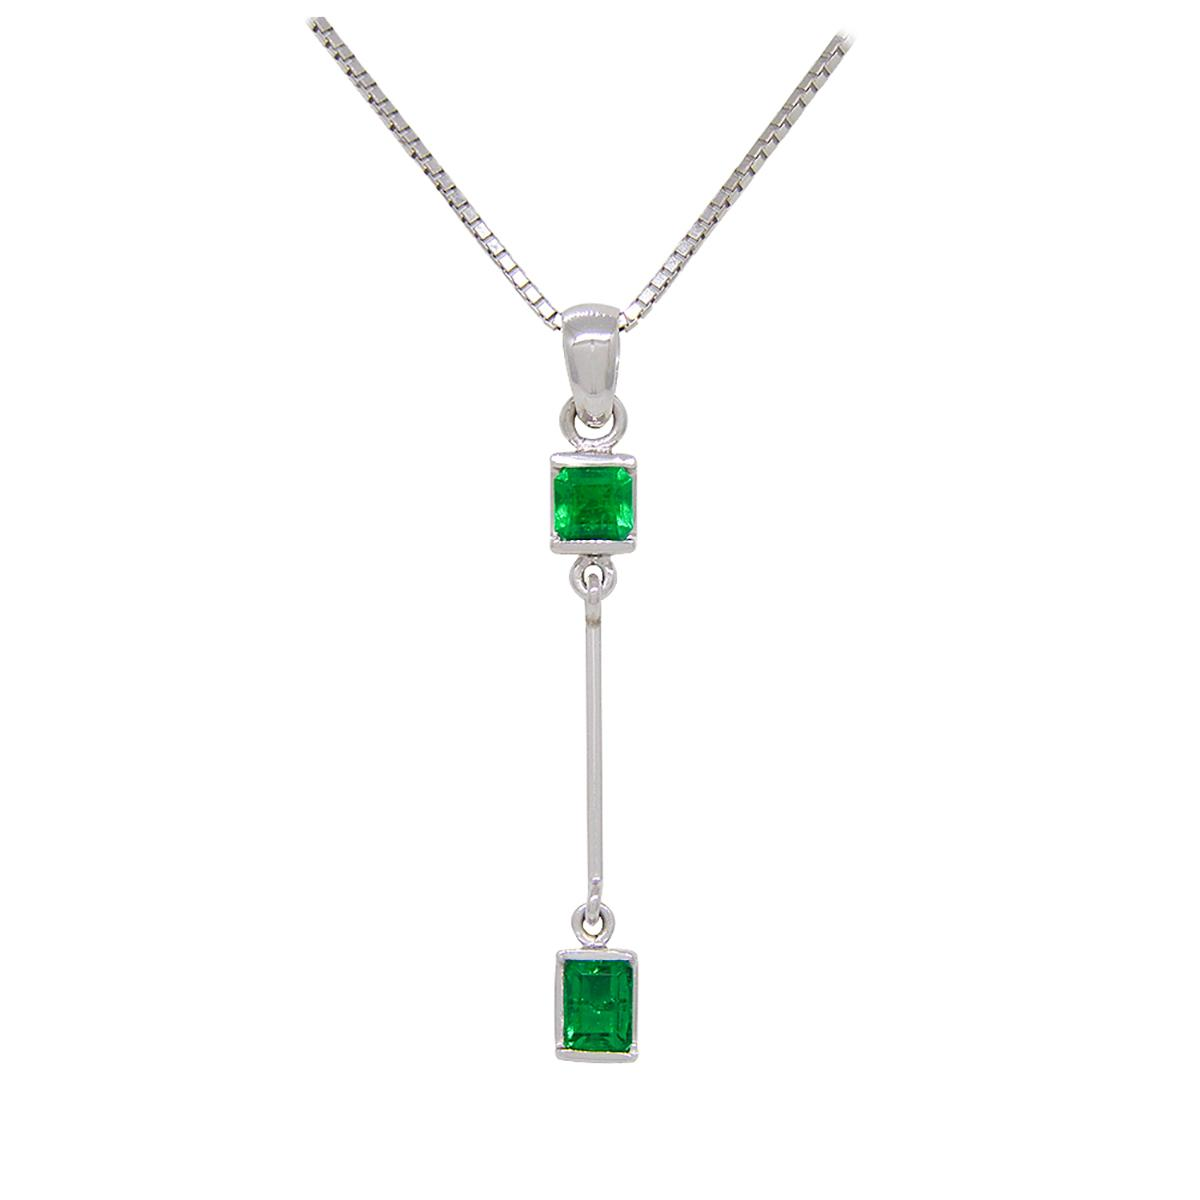 emerald-necklace-custom-made-in-18k-white-gold-for-baguette-cut-emeralds